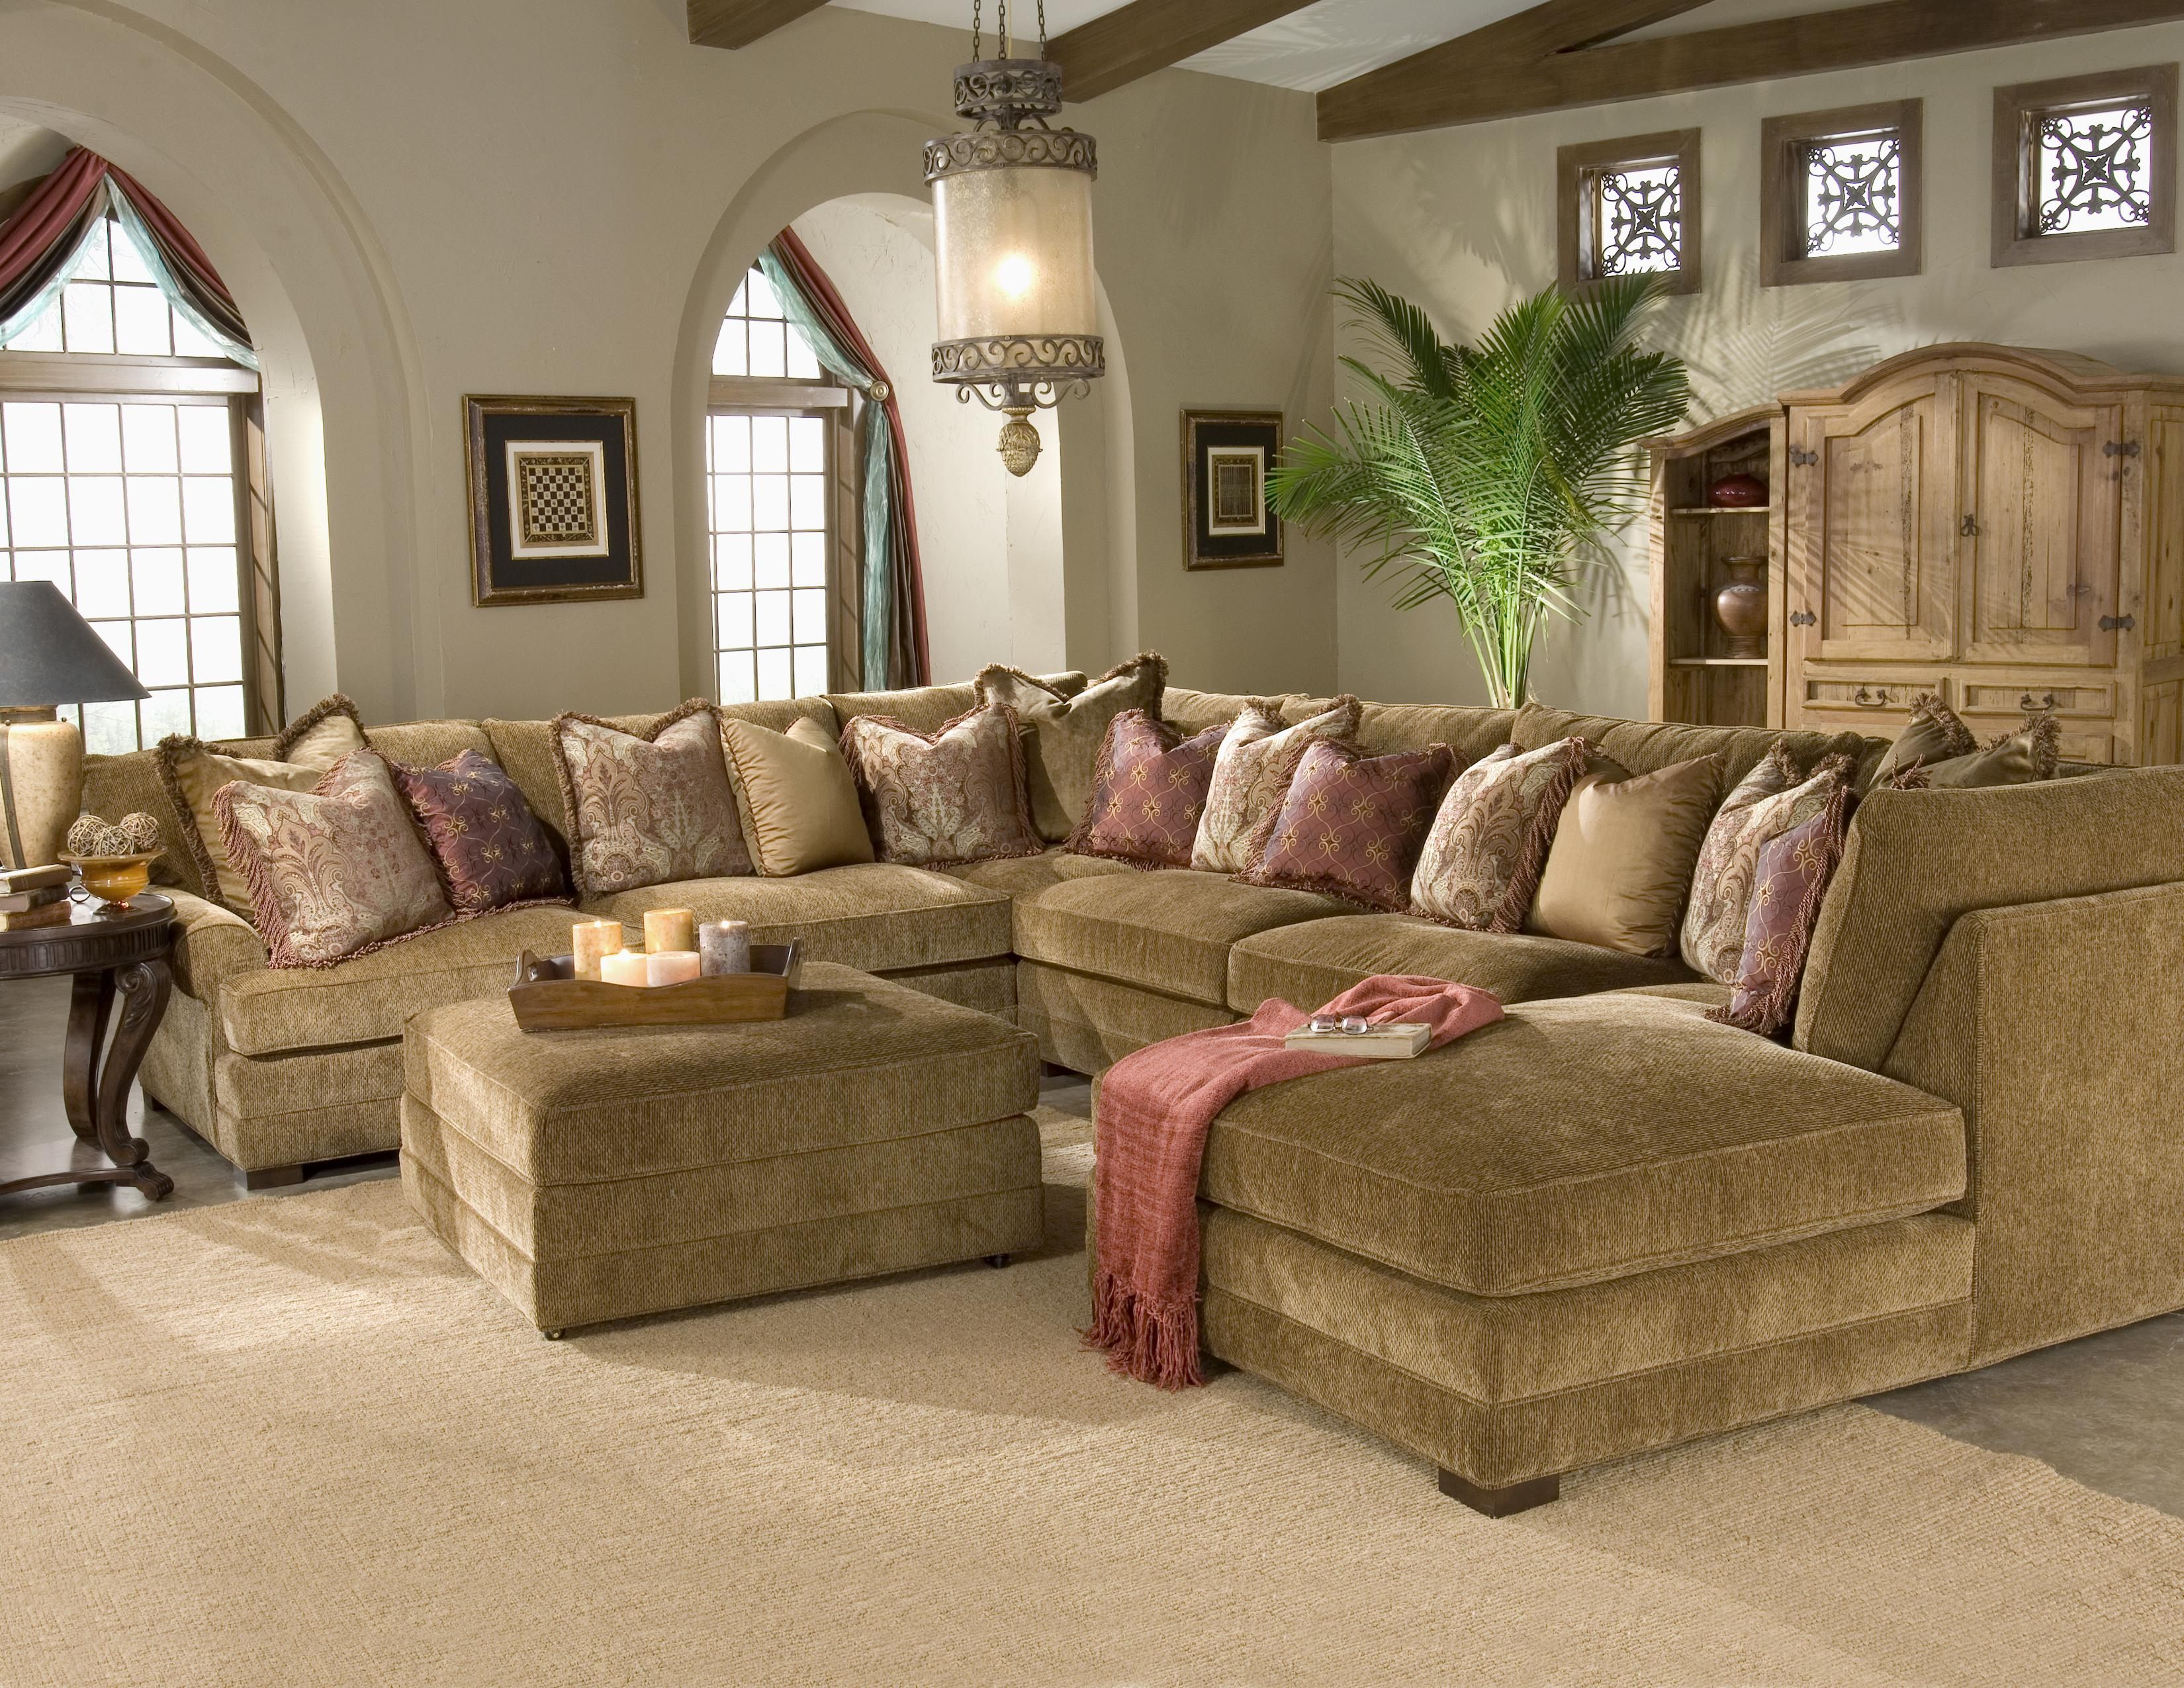 King Hickory Casbah Transitional U Shaped Sectional Sofa Godby